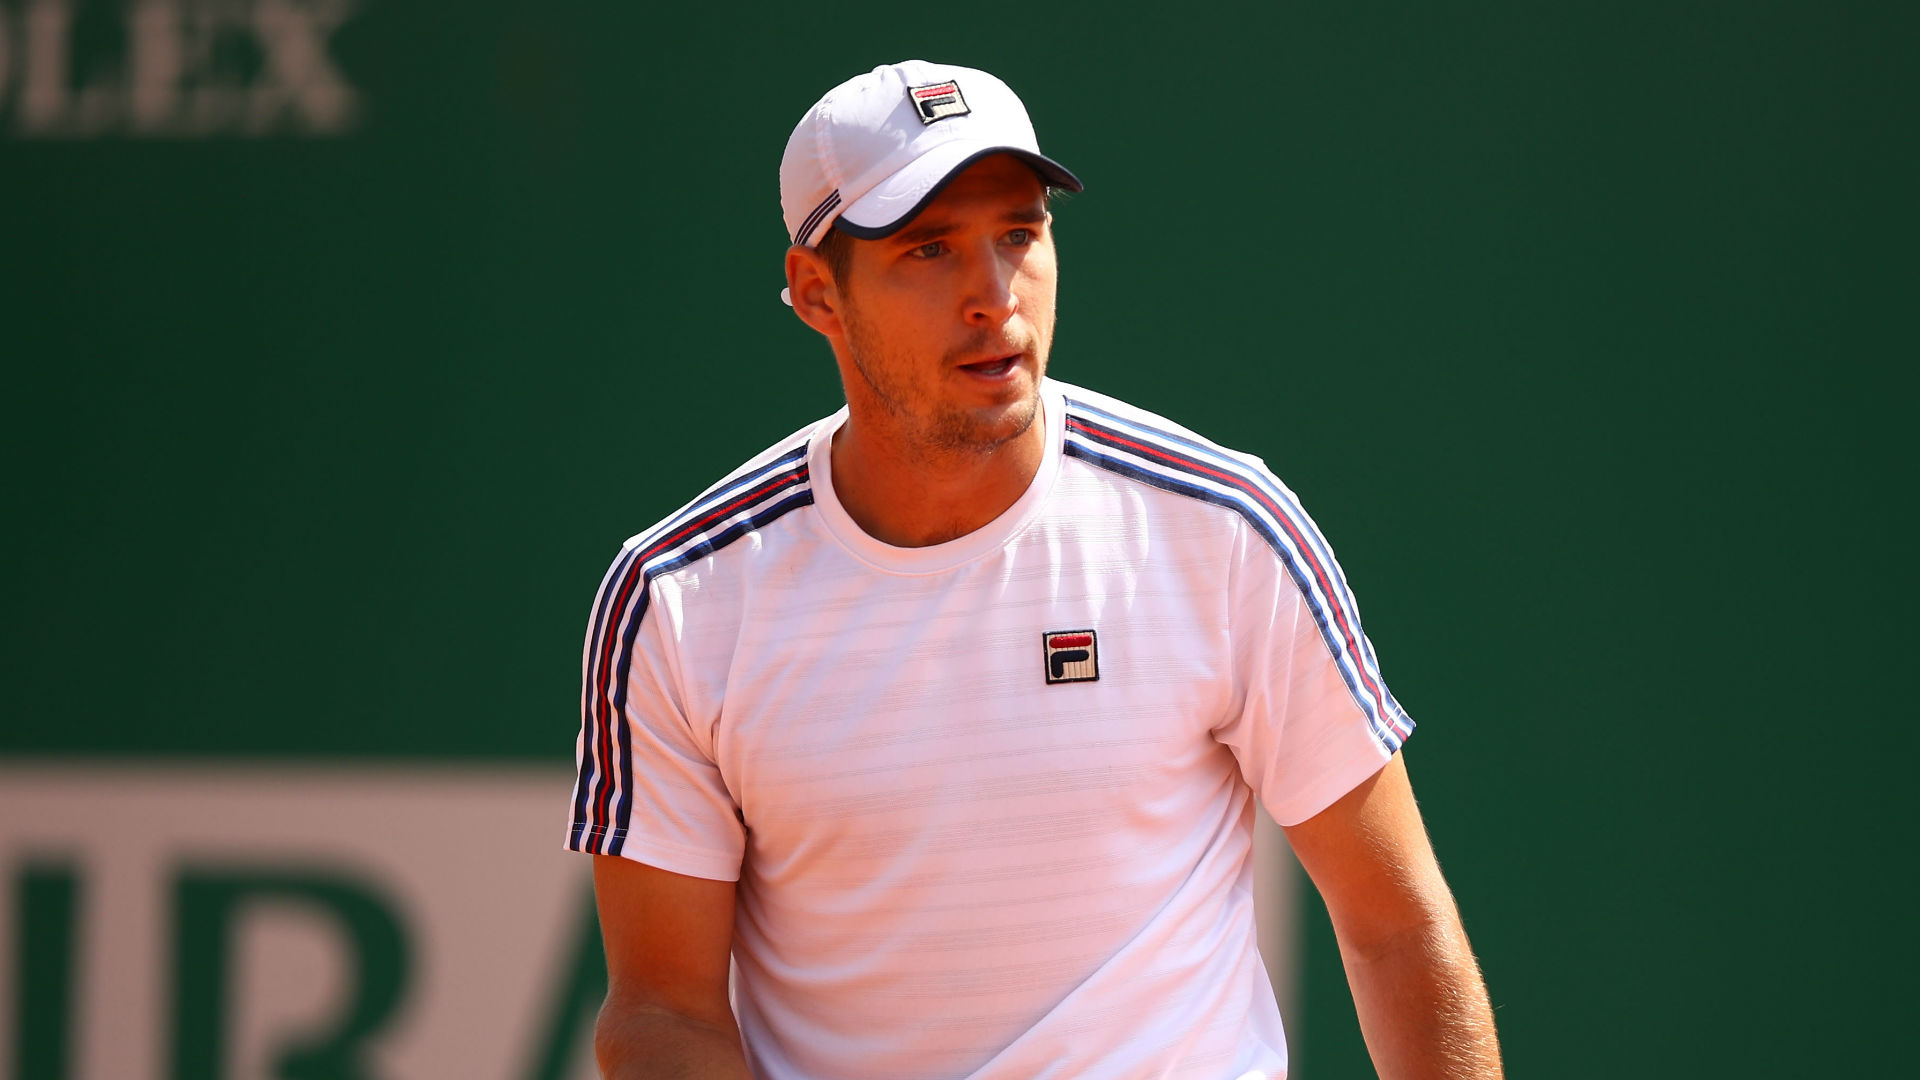 Lajovic reaches Monte Carlo final